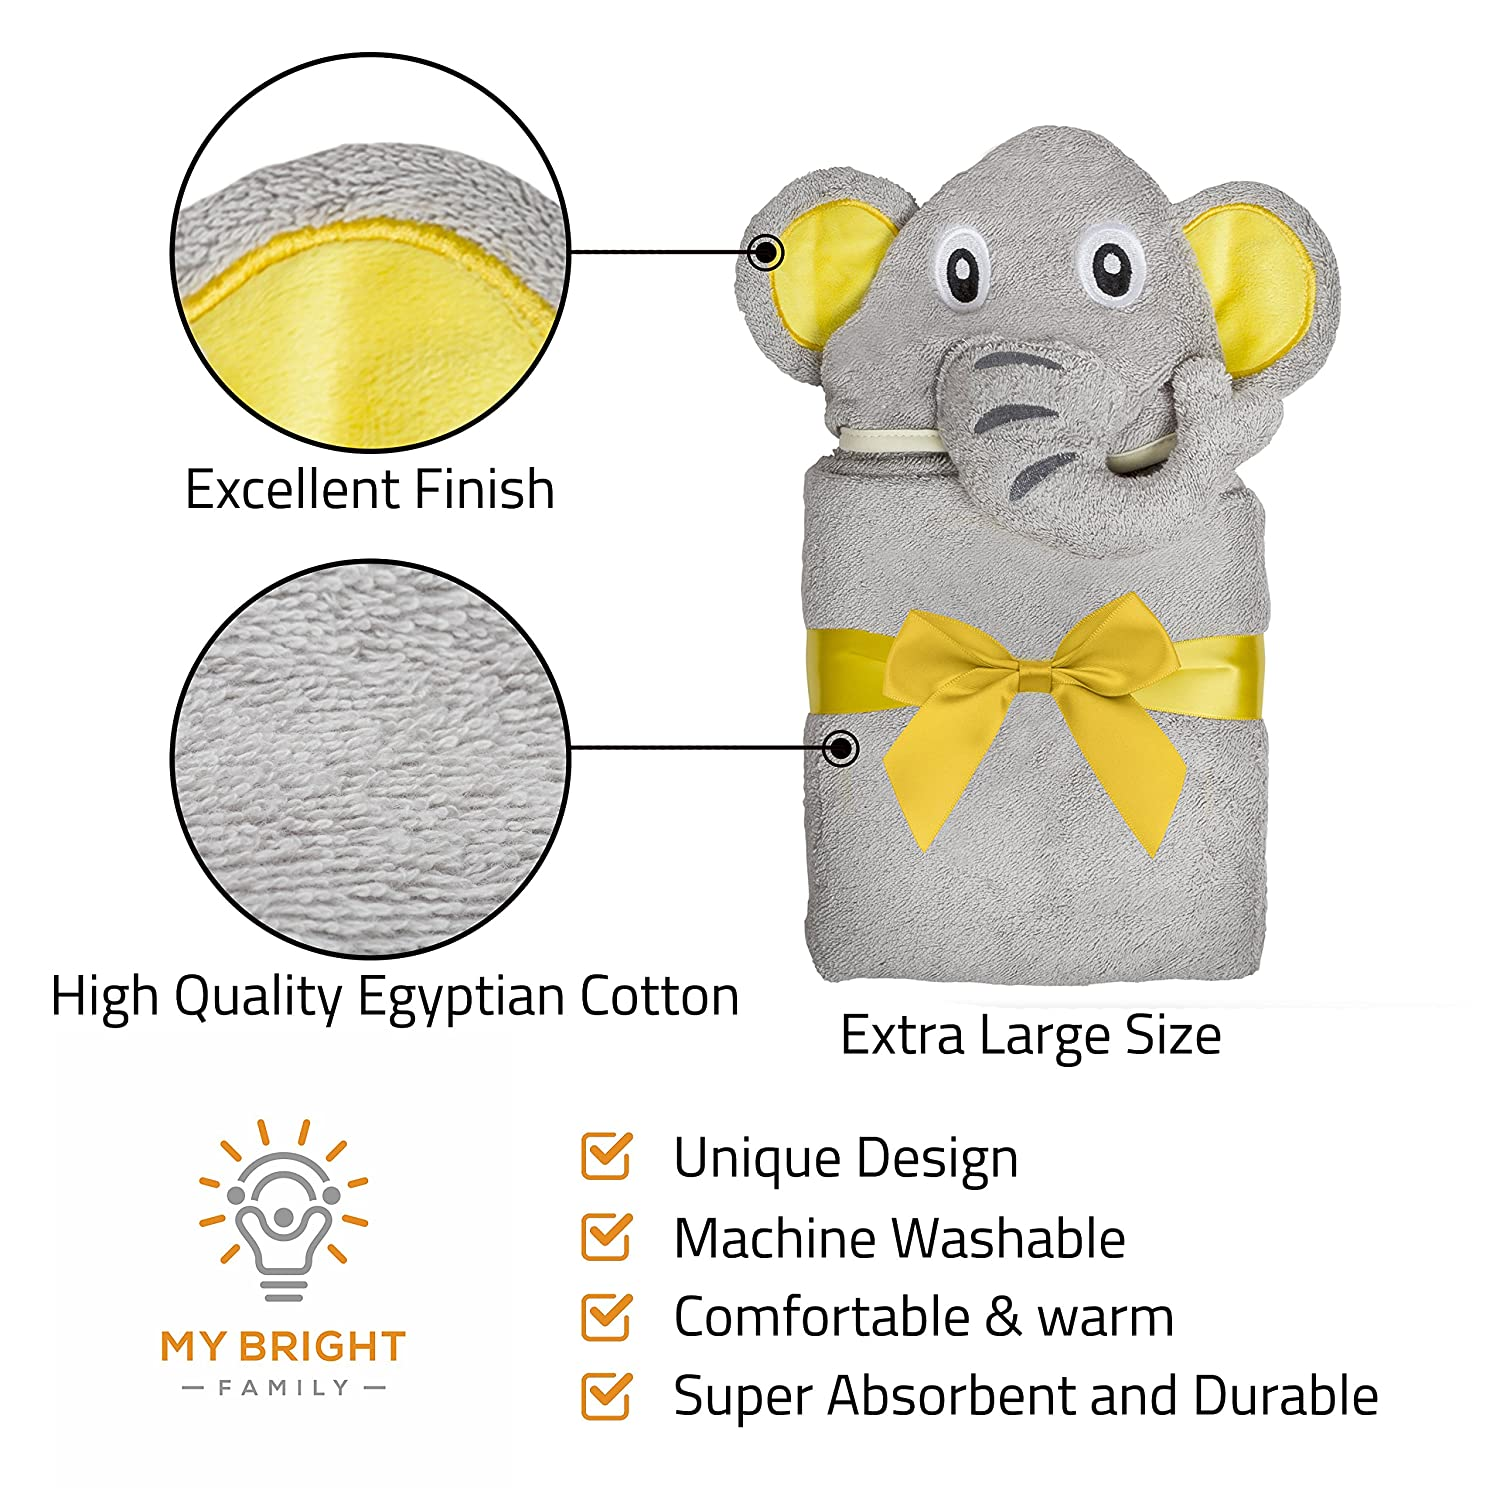 Amazon.com : Adorable Elephant Hooded Baby Towel | Luxurious, Extra-Soft, 100% Egyptian Cotton for Newborns, Infants & Kids | Hypoallergenic ...